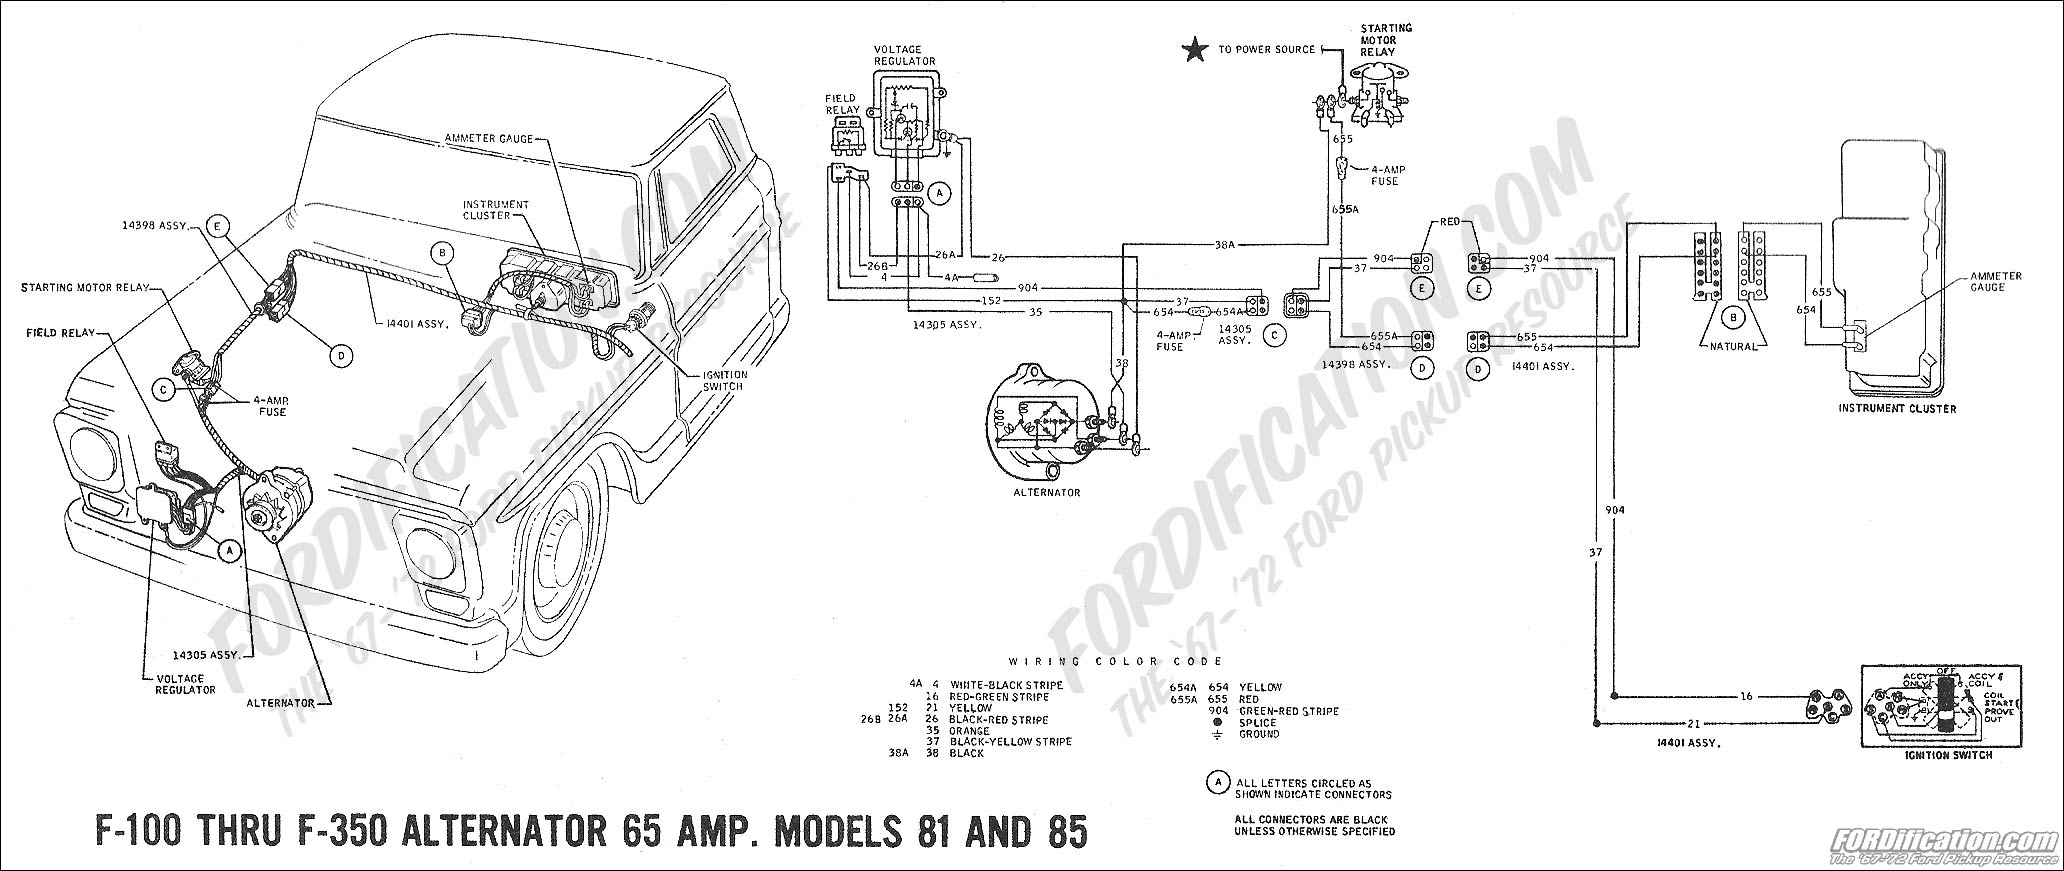 wiring_69charging03 ford truck technical drawings and schematics section h wiring 1992 ford f150 alternator wiring diagram at mifinder.co